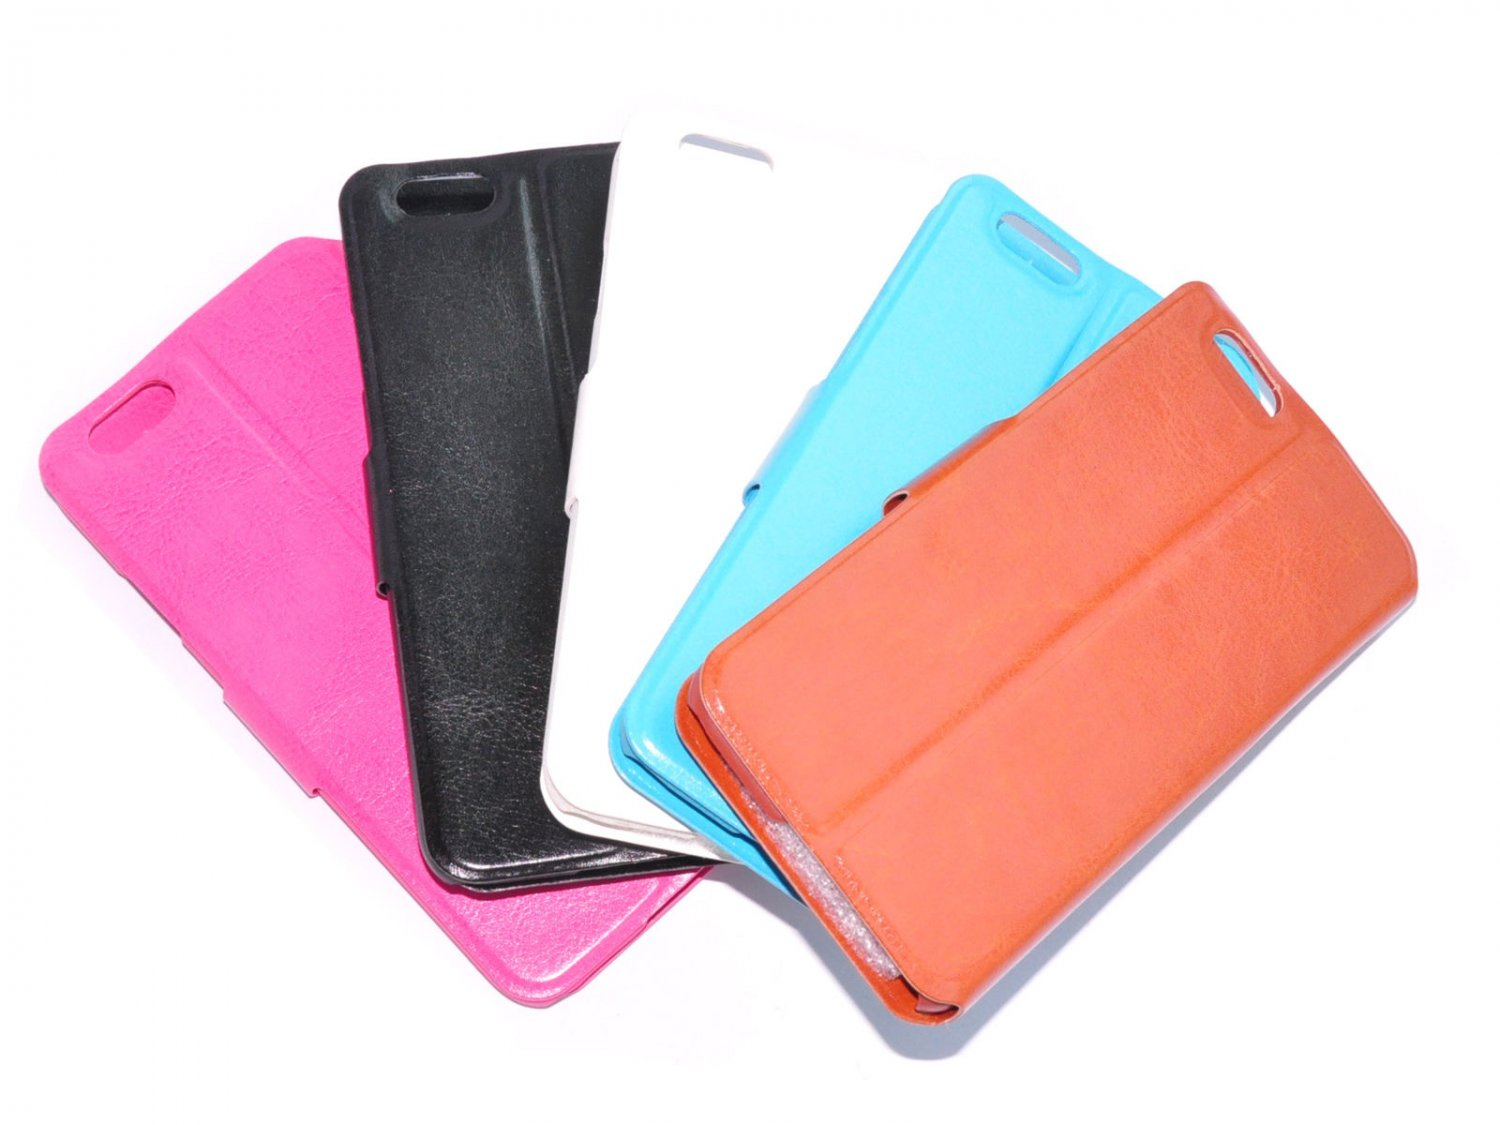 New  Leather beautiful Luxury Case Cover For iPhone 6 4.7inch